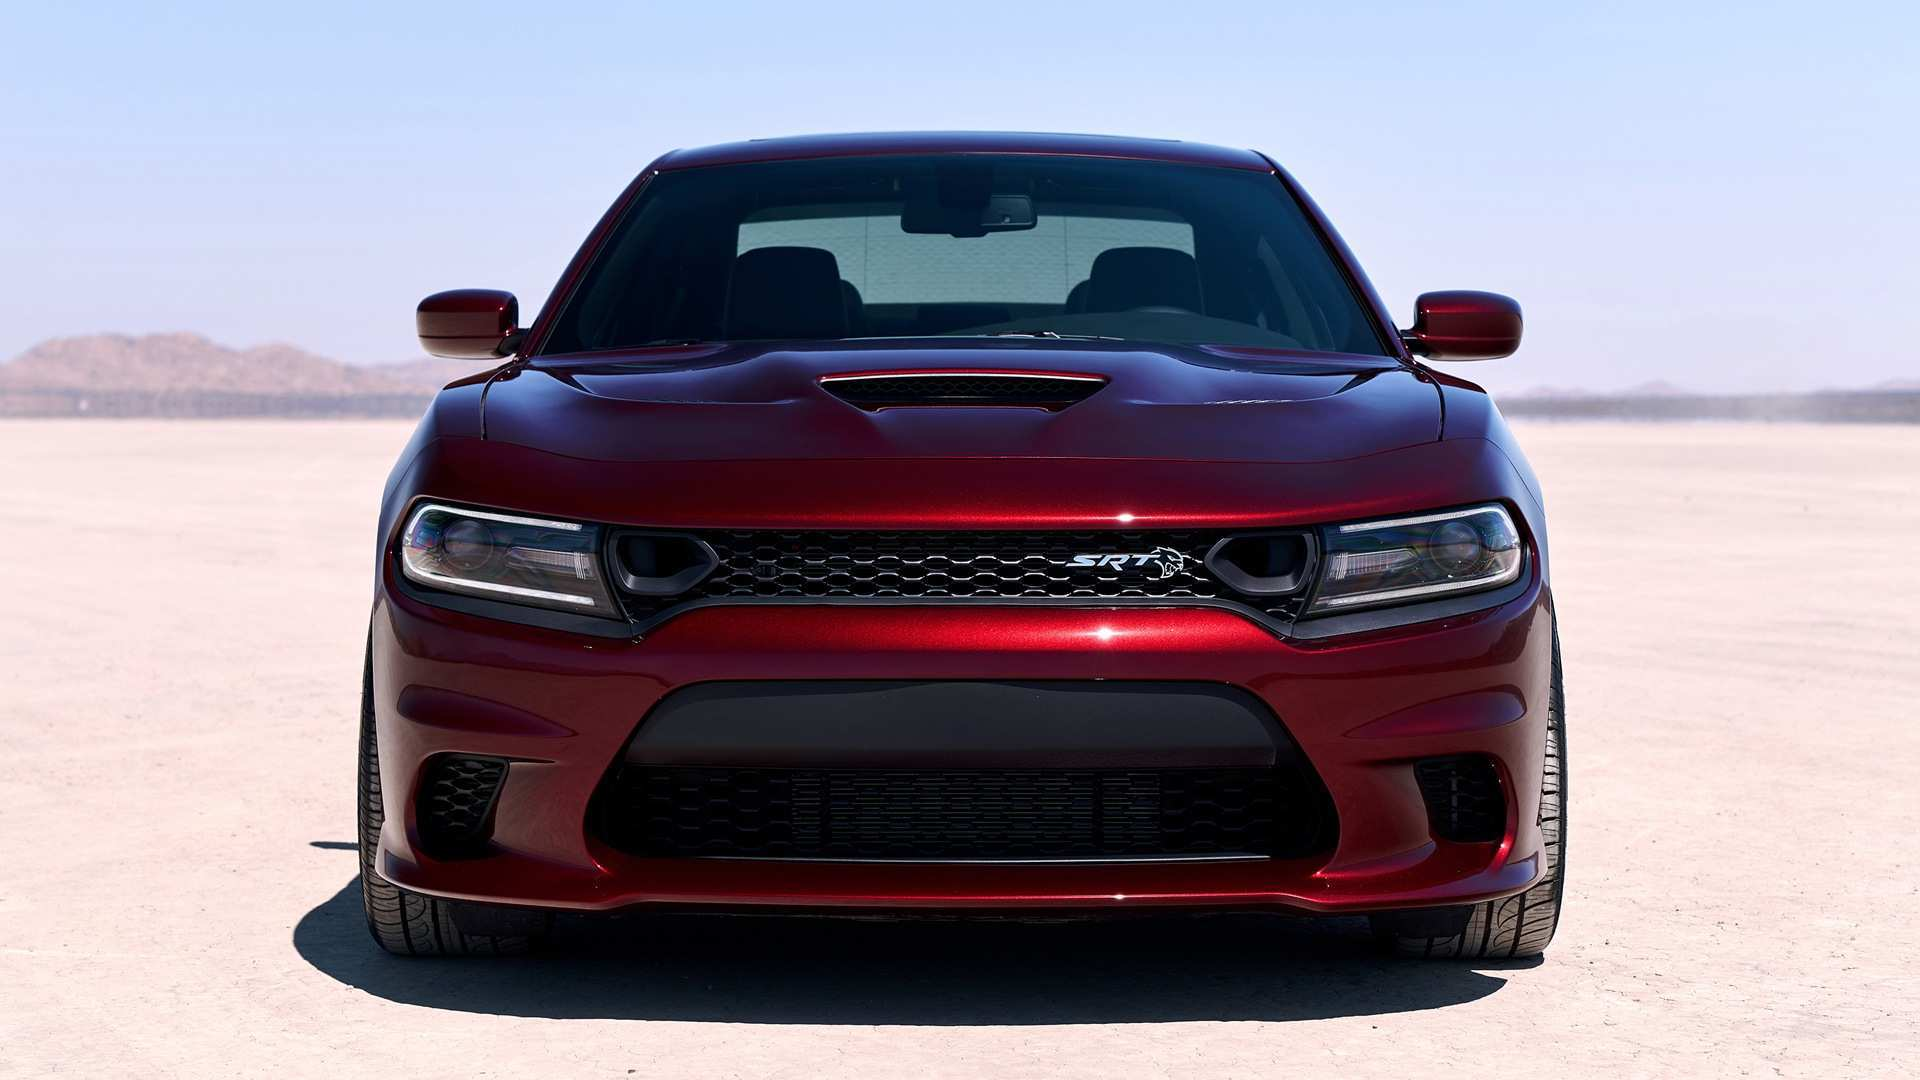 98 Gallery of 2020 Dodge Charger Hellcat Price for 2020 Dodge Charger Hellcat